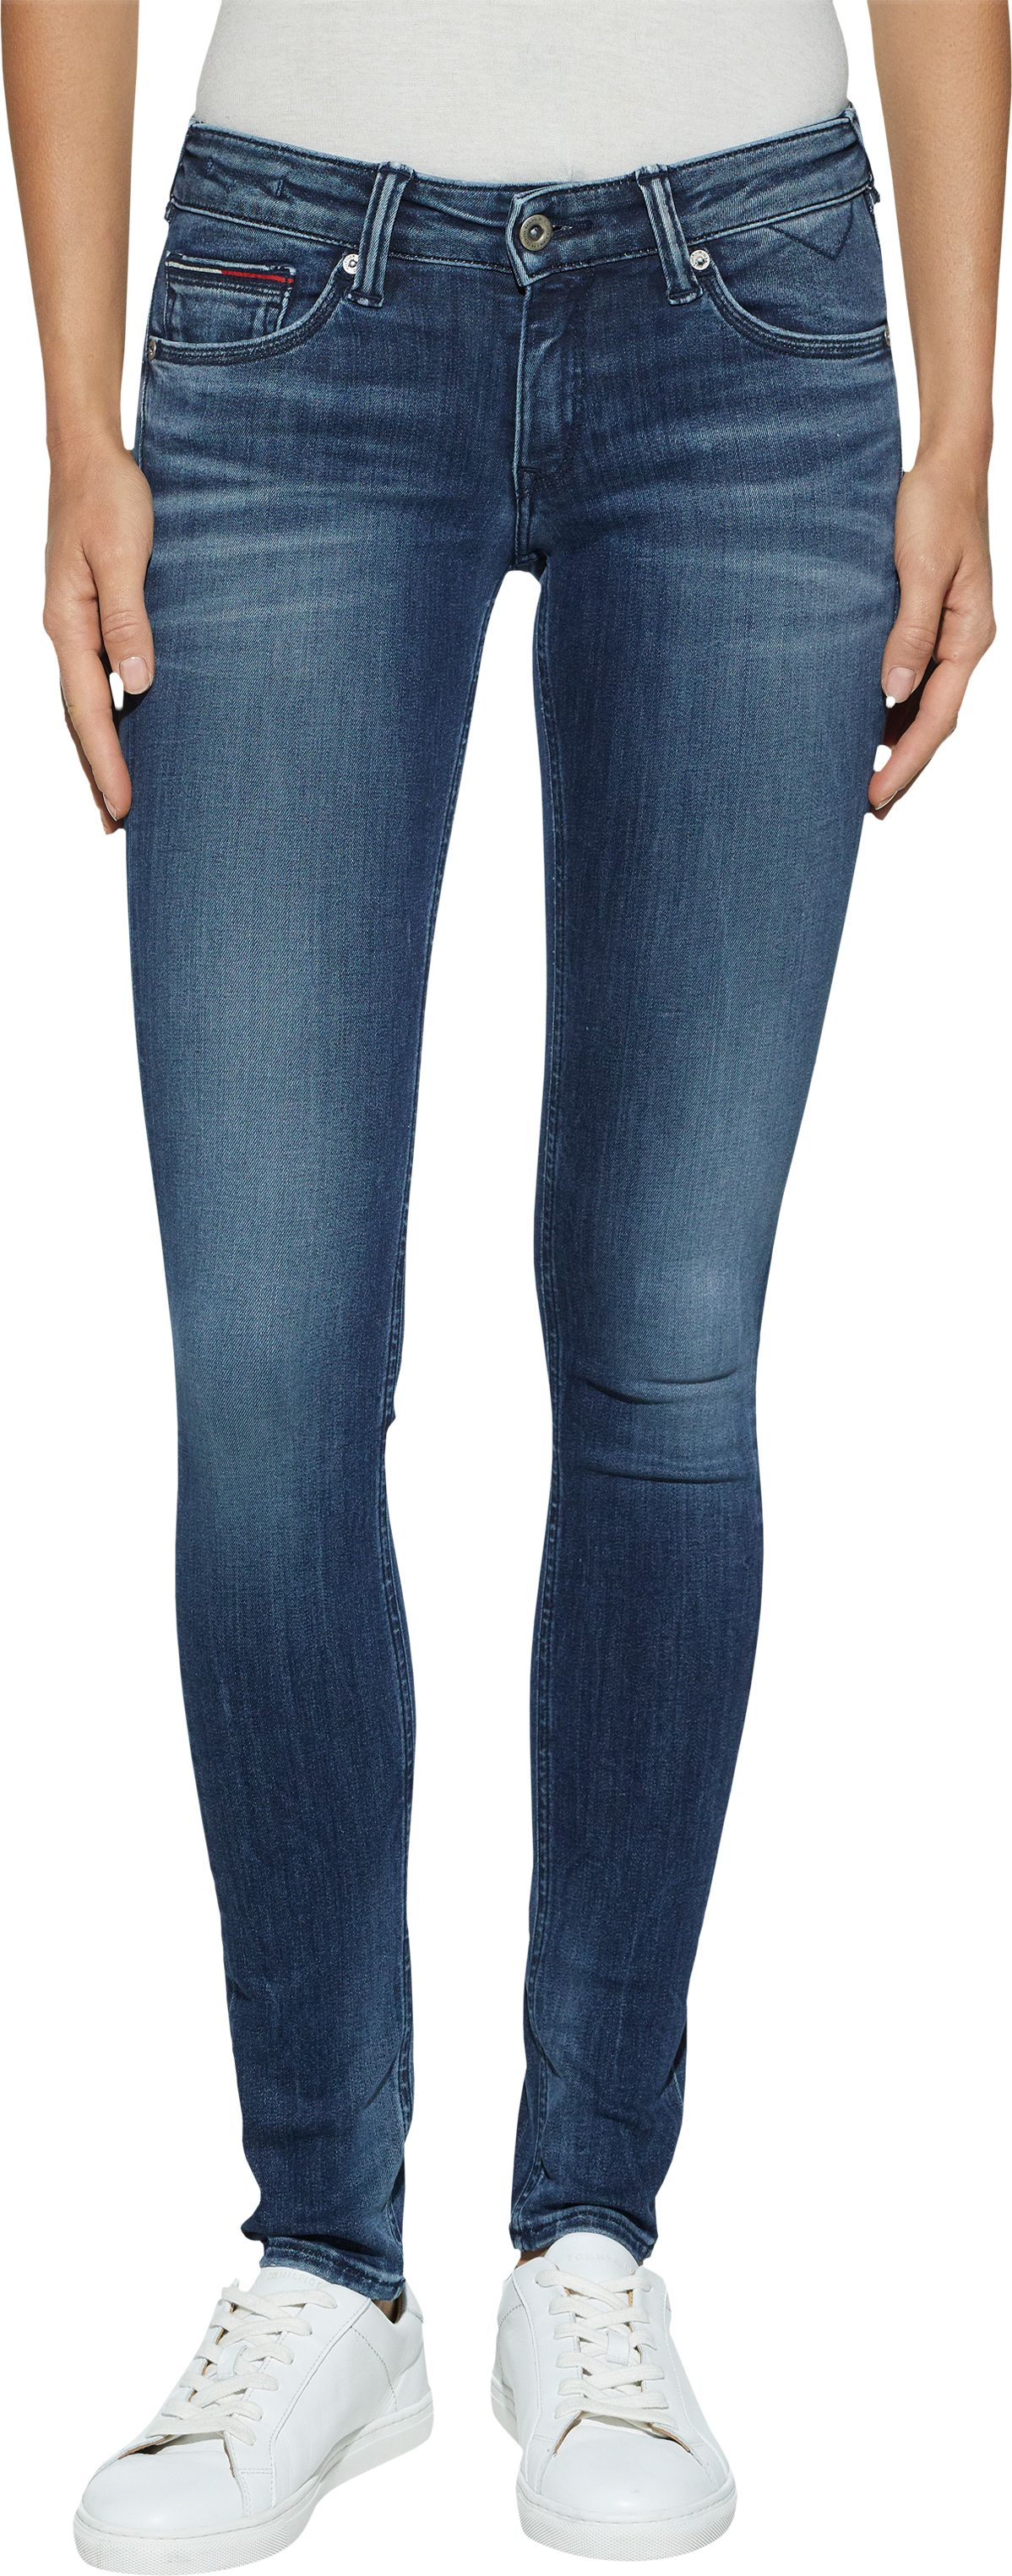 London skinny jeans tommy hilfiger